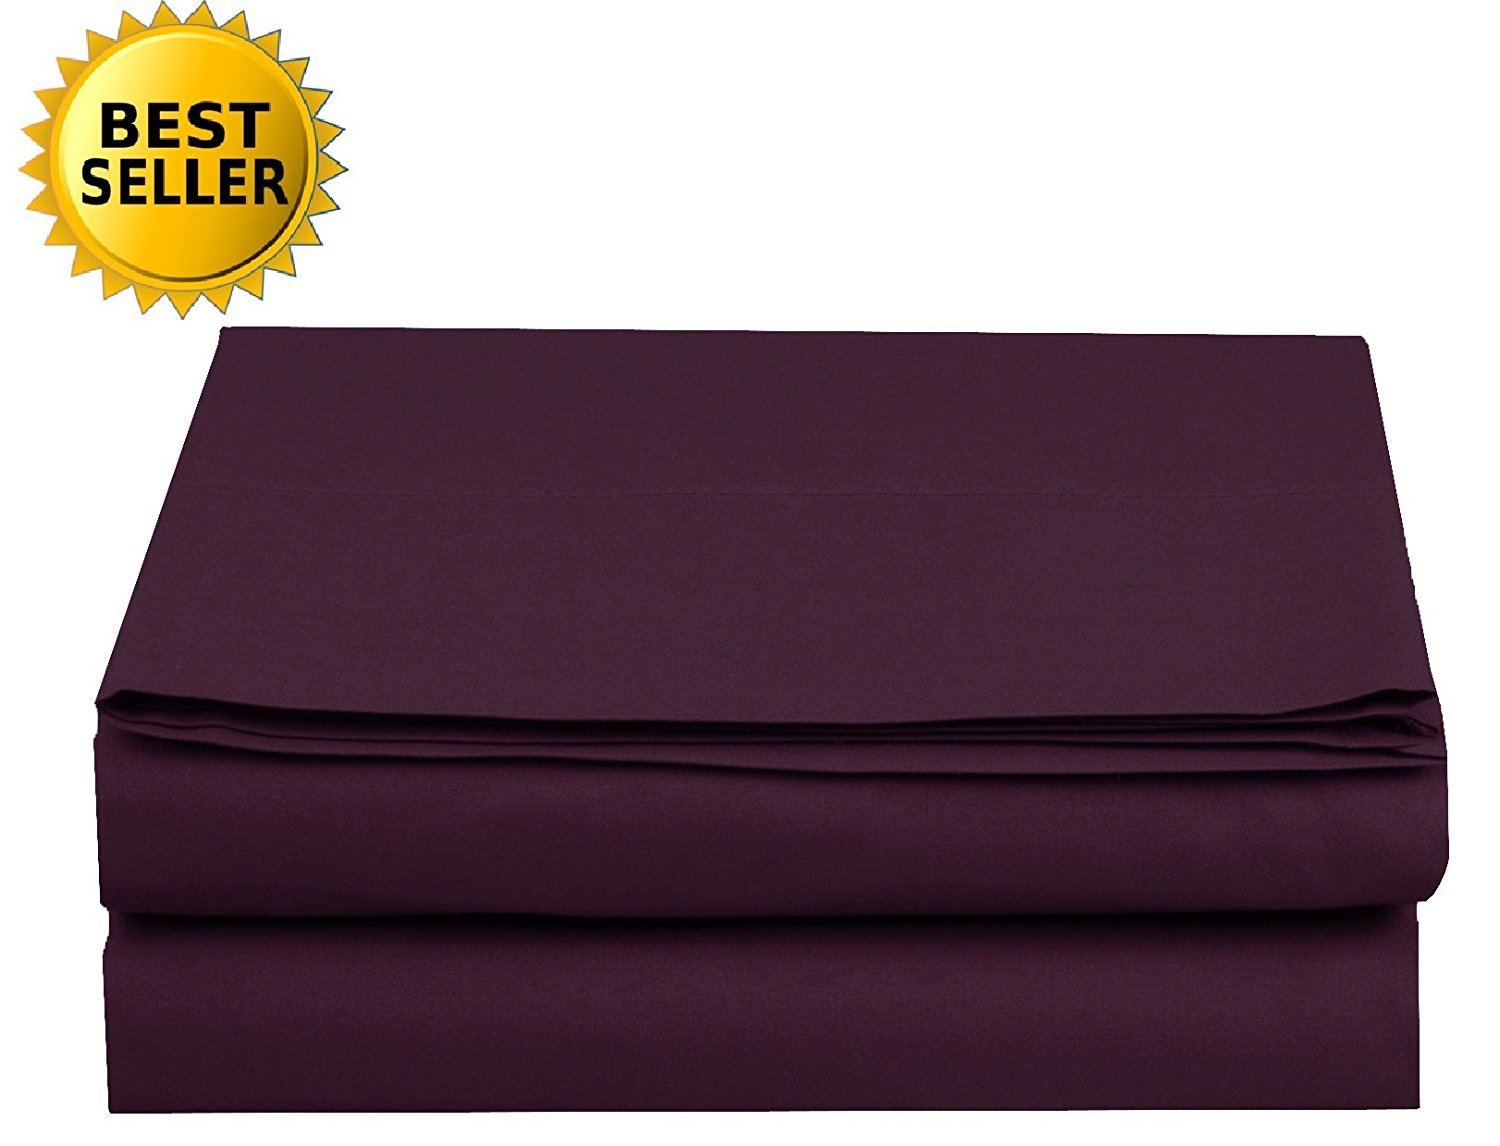 Luxury Fitted Sheet on Amazon Elegant Comfort Wrinkle-Free 1500 Thread Count Egyptian Quality 1-Piece Fitted Sheet, Twin/Twin XL Size, Purple